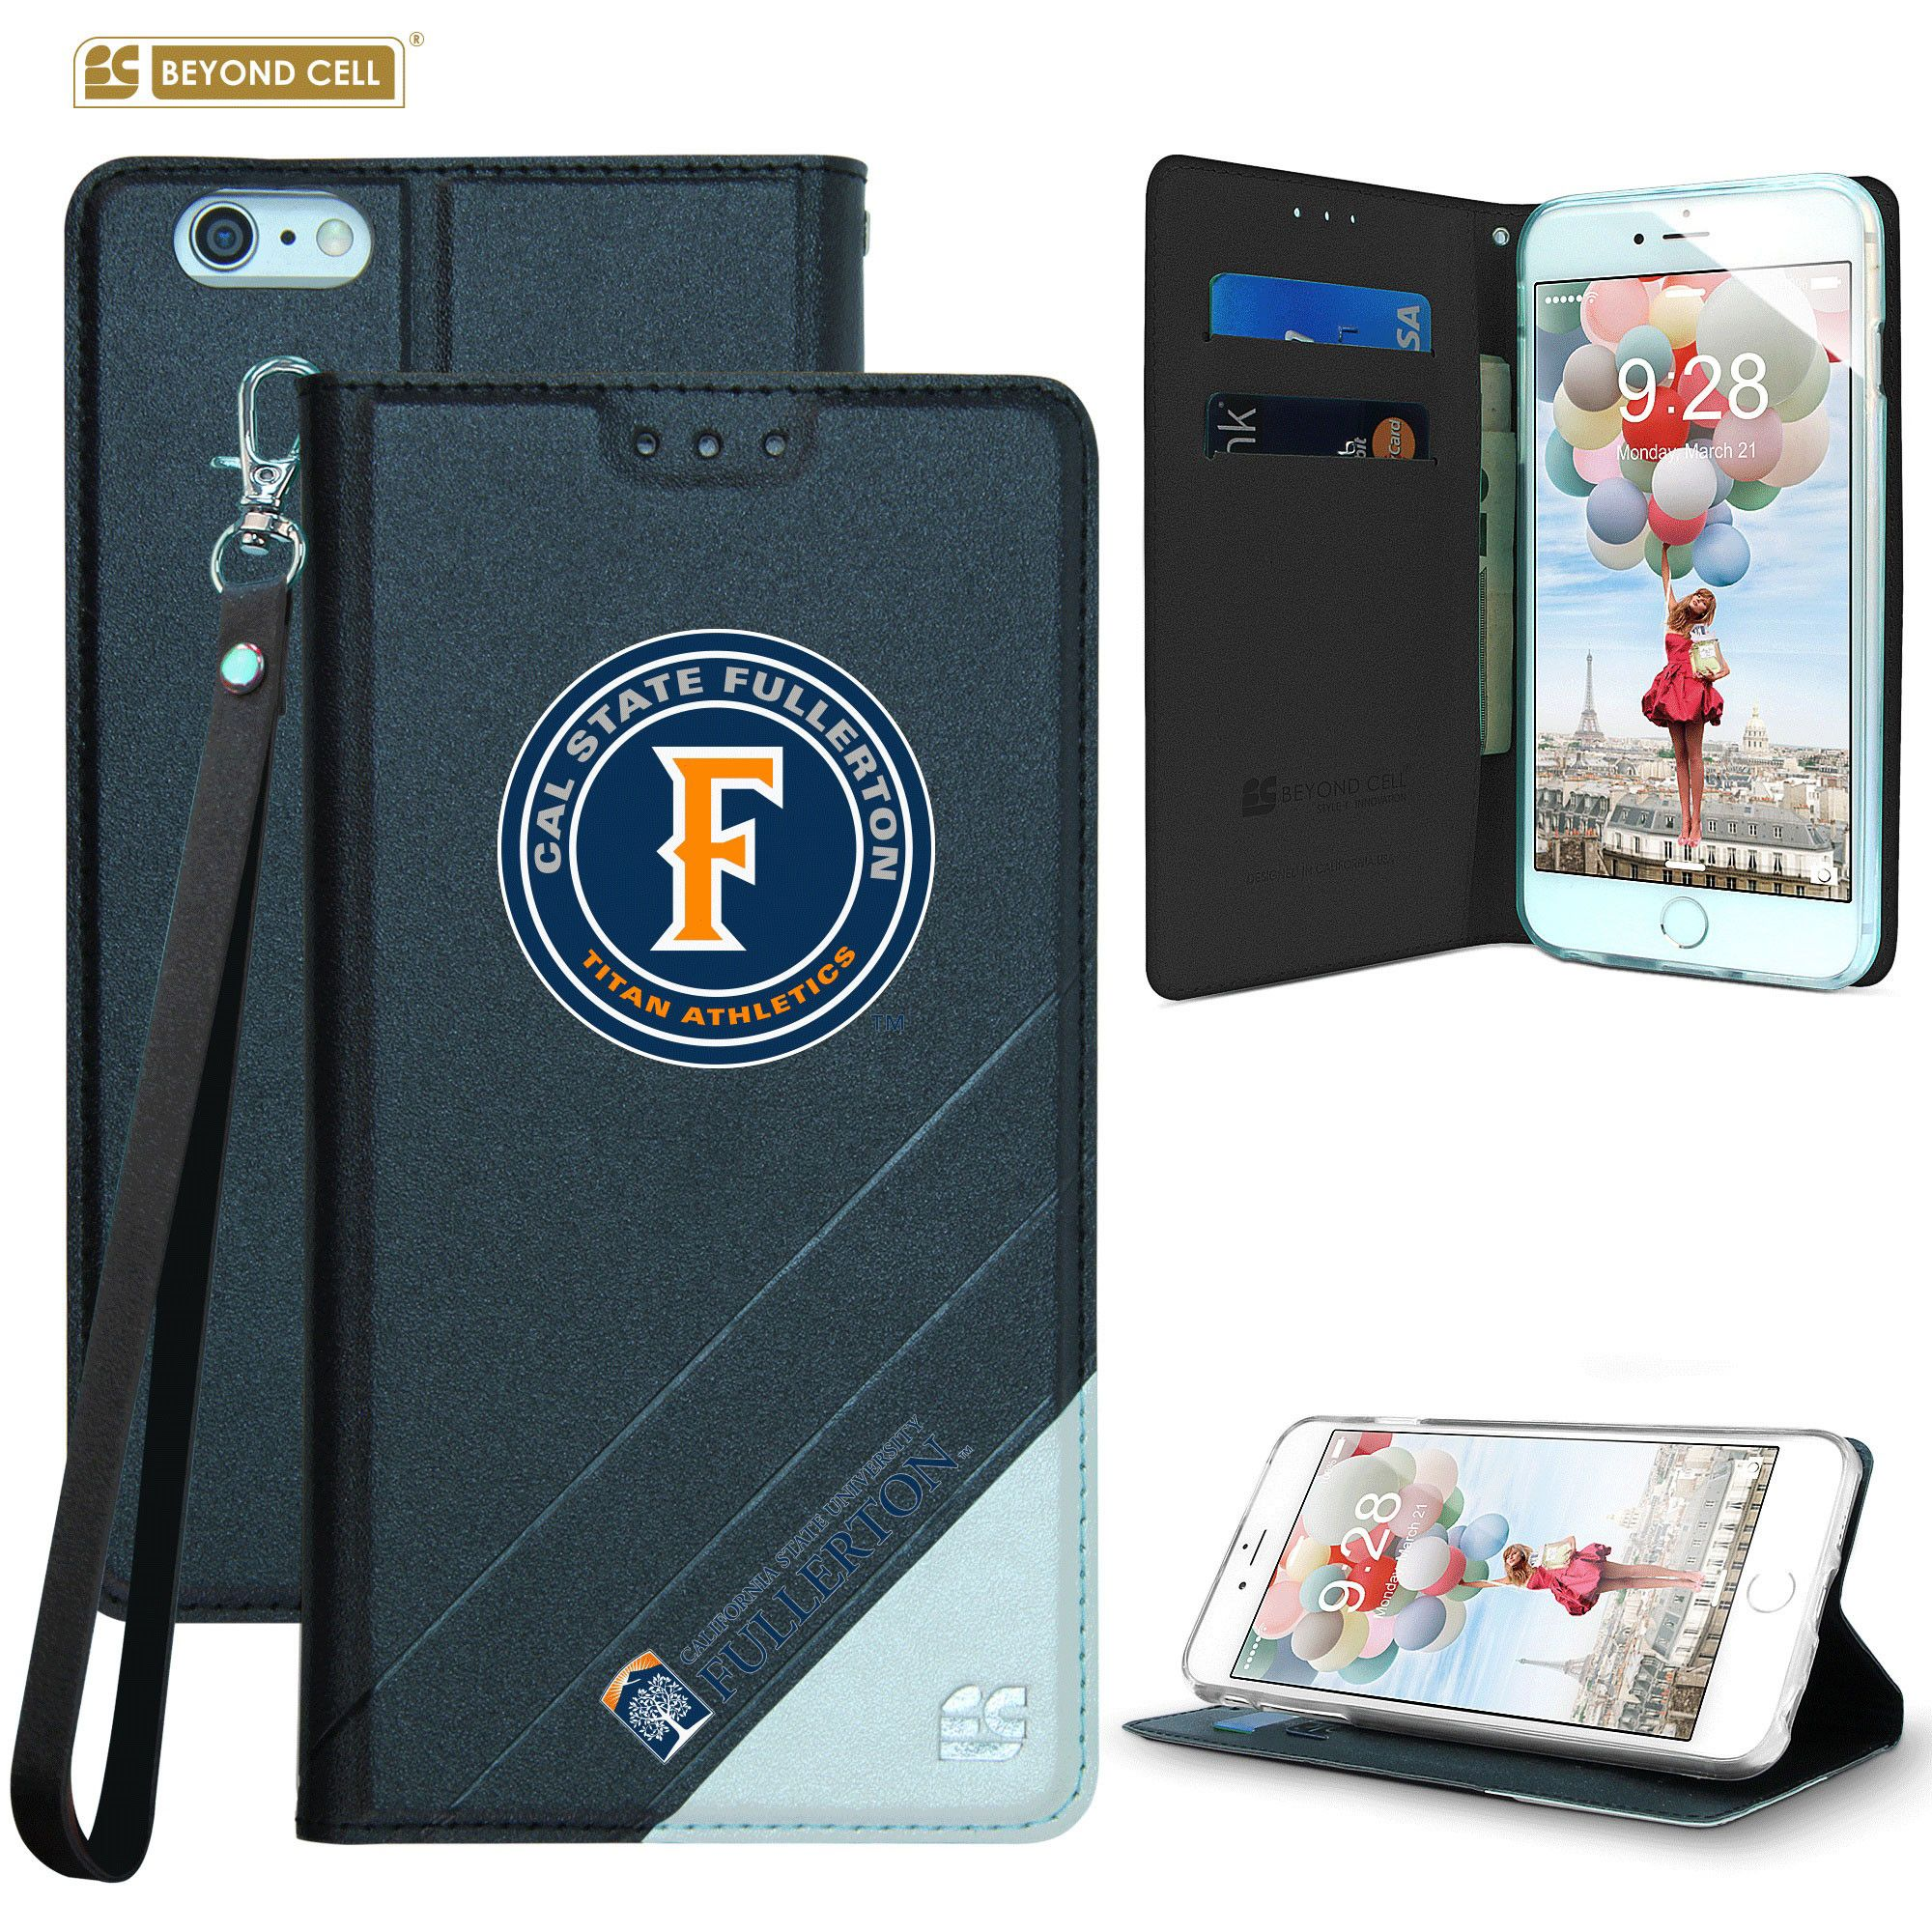 Apple iPhone 6 Plus -  Licensed Cal State Fullerton Folding Wallet case with card slots and wristlet, Black